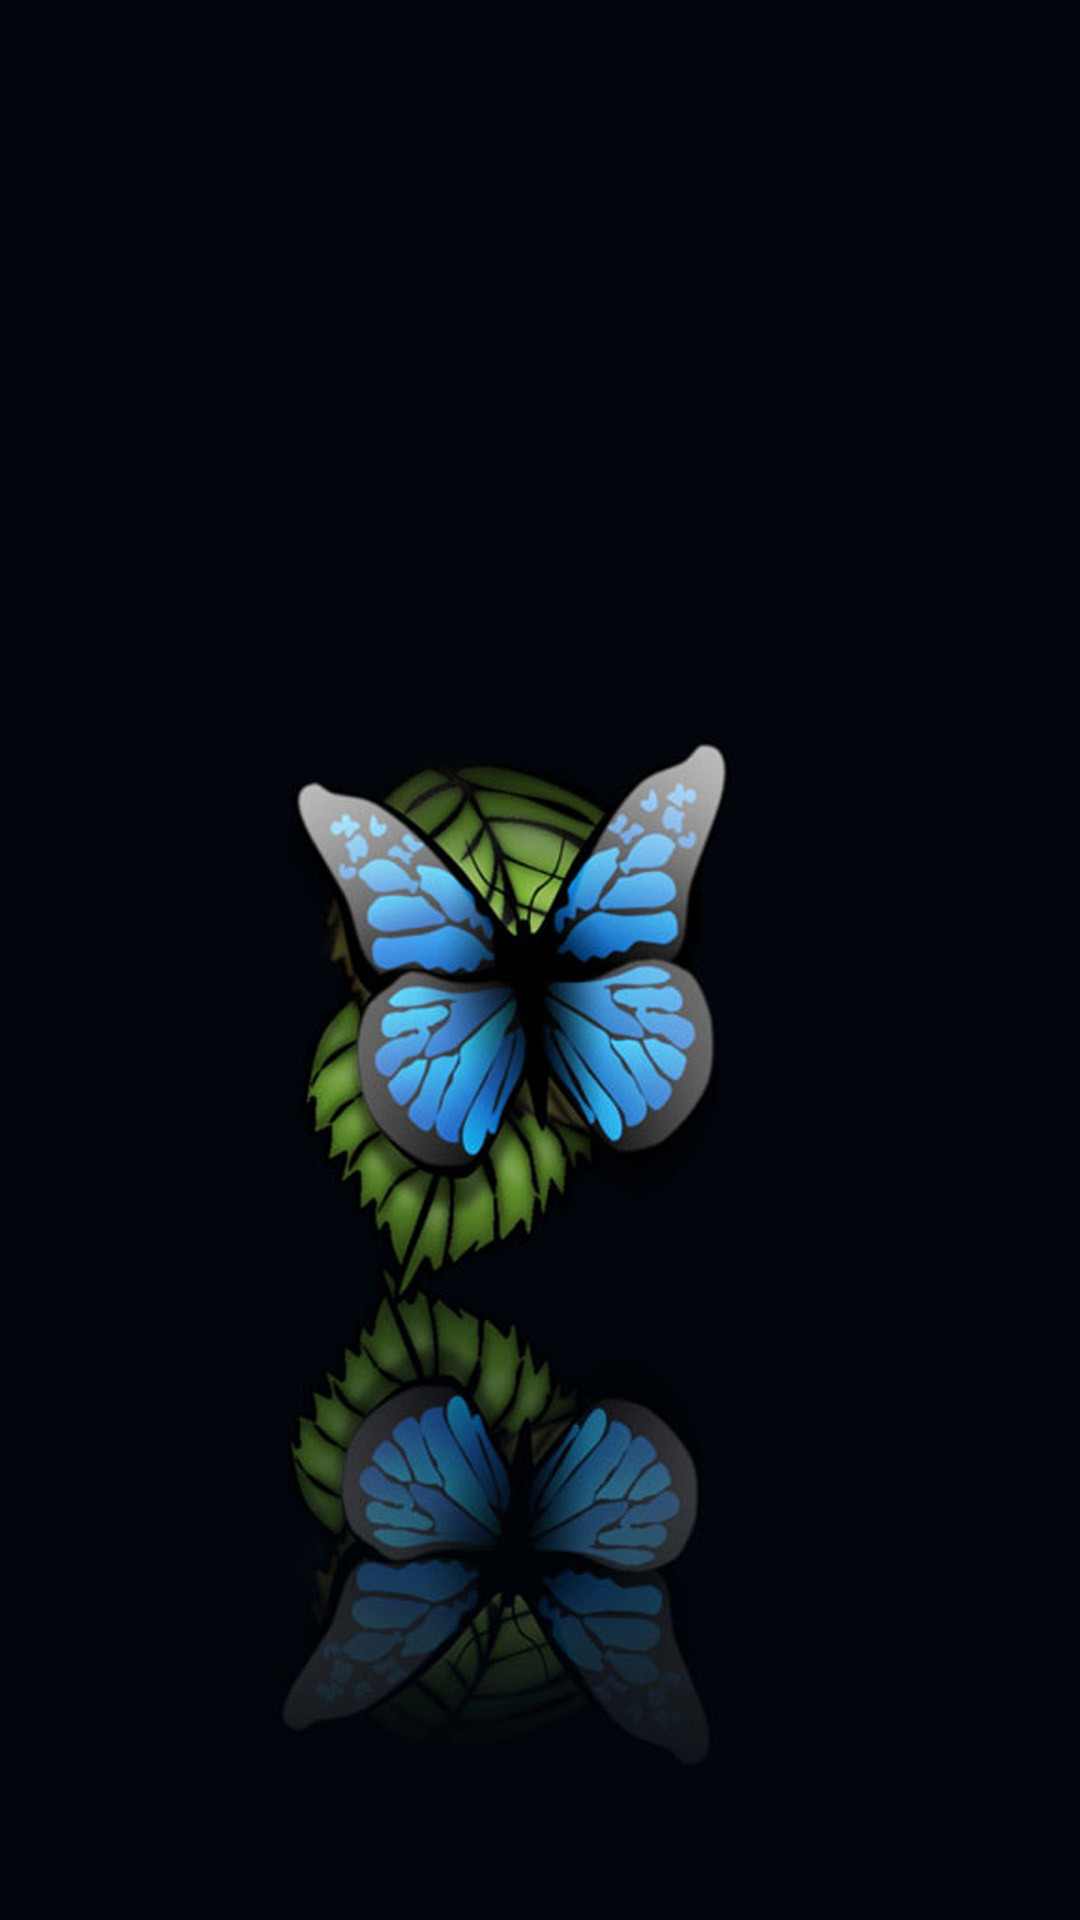 Blue Butterfly Black Background Android Wallpaper …